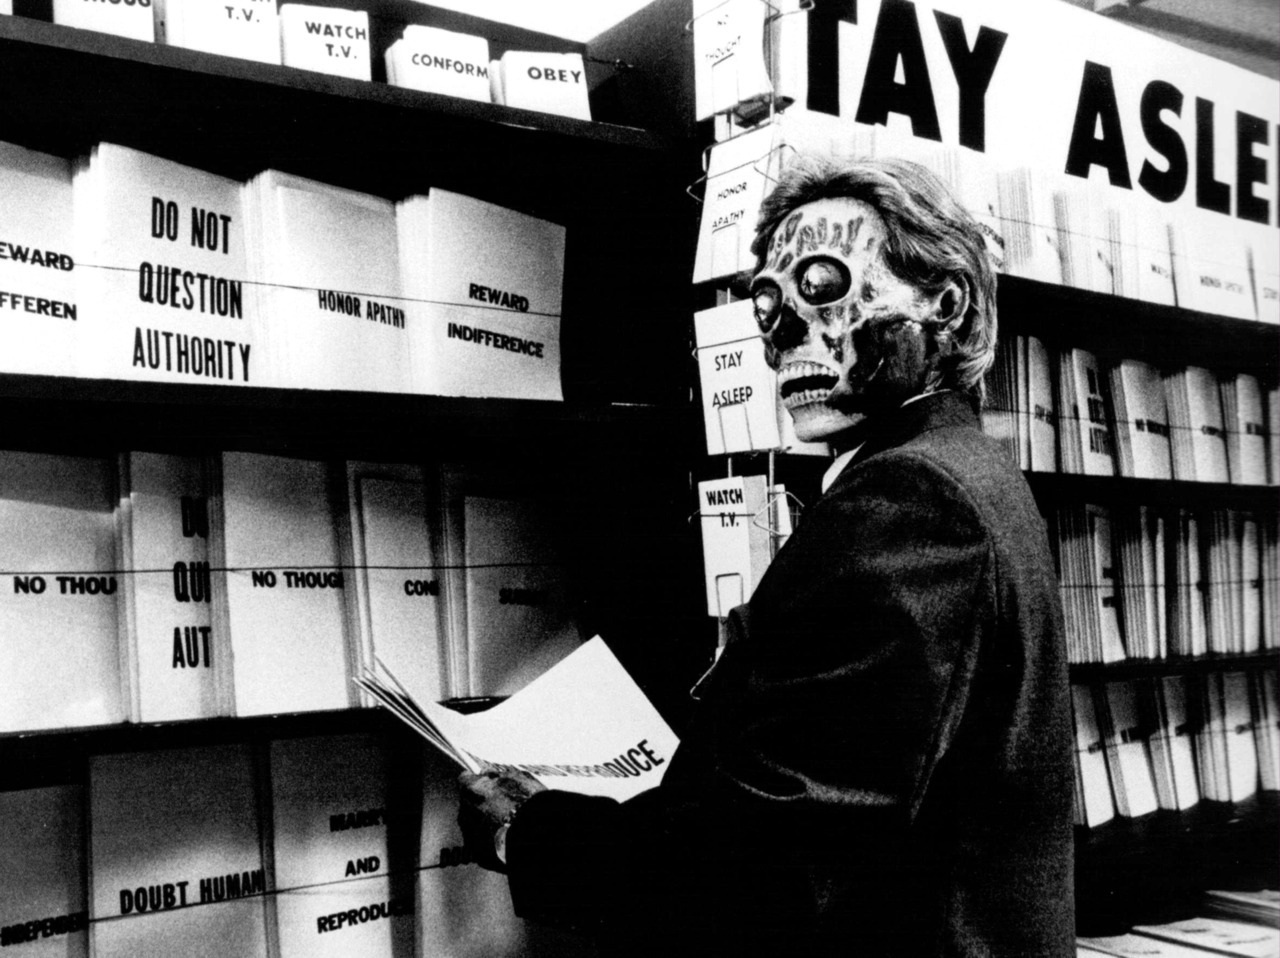 In  They Live,  special Wayfarers reveal the subtext of the industrialized world.